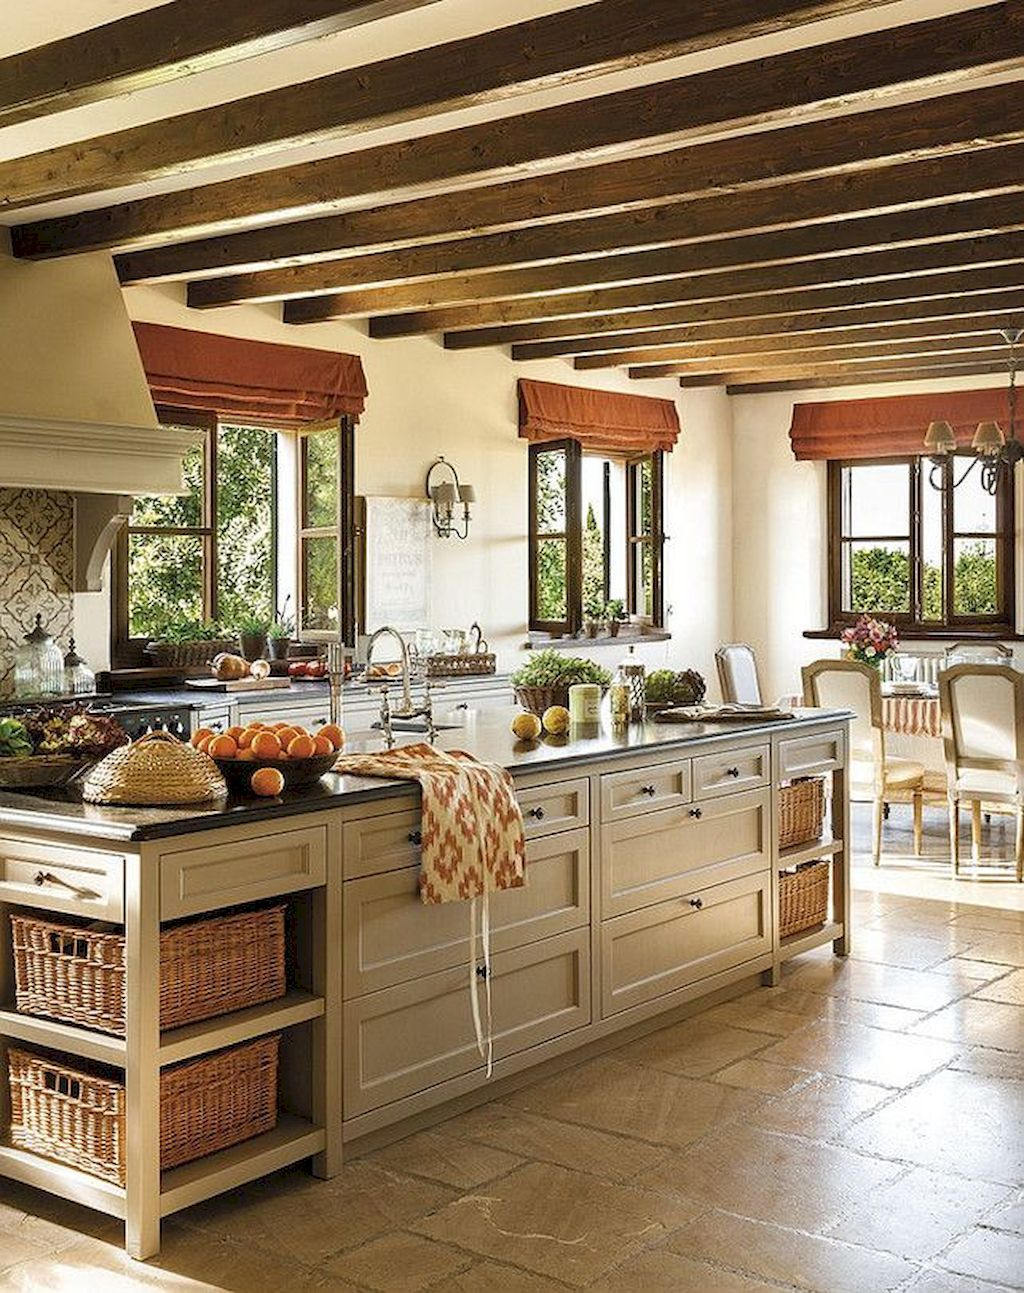 Nice 70 Fancy French Country Kitchen Design Ideas Https Decoremodel Com 70 Fancy French Co French Kitchen Design French Kitchen Decor Country Kitchen Designs